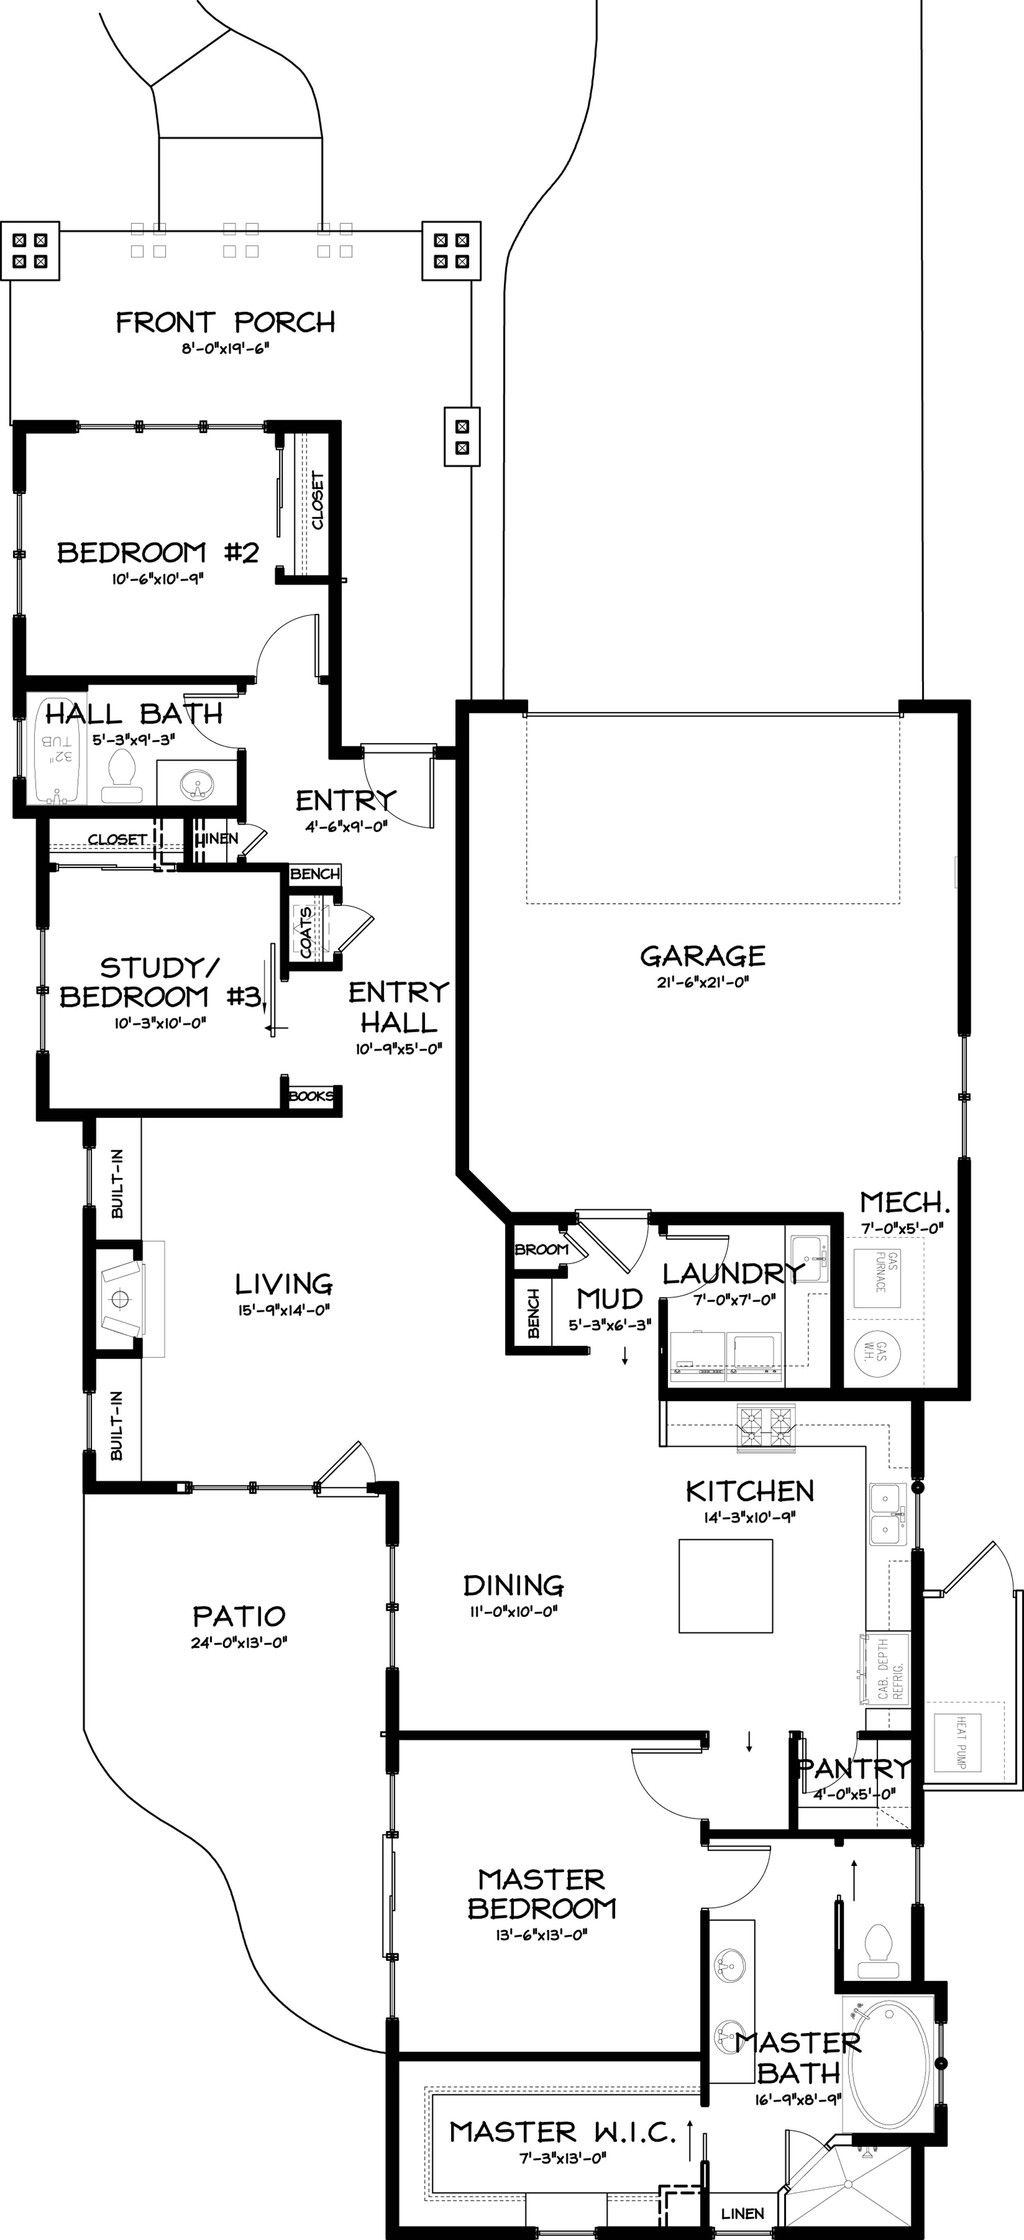 Craftsman style house plan 3 beds 2 baths 1710 sq ft for L shaped craftsman home plans